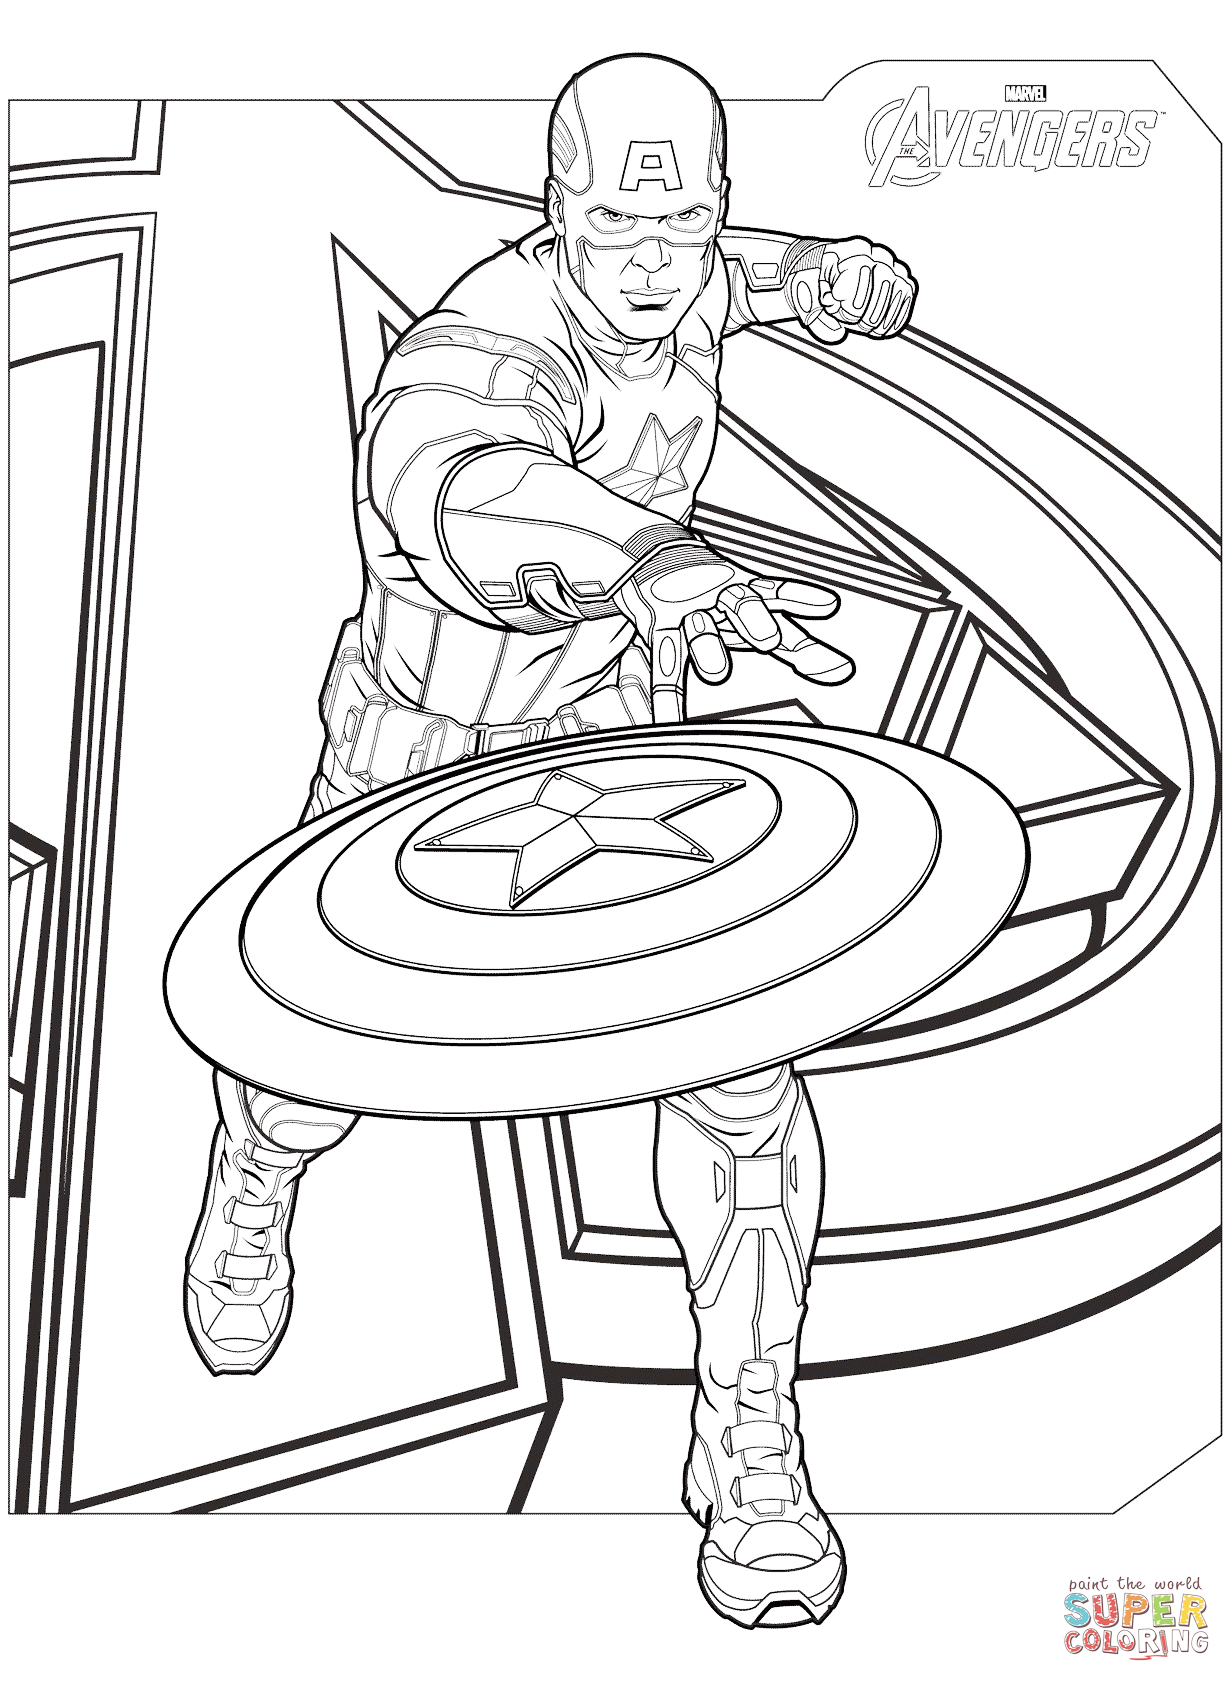 Click the avengers captain america coloring pages to view printable version or color it online compatible with ipad and android tablets